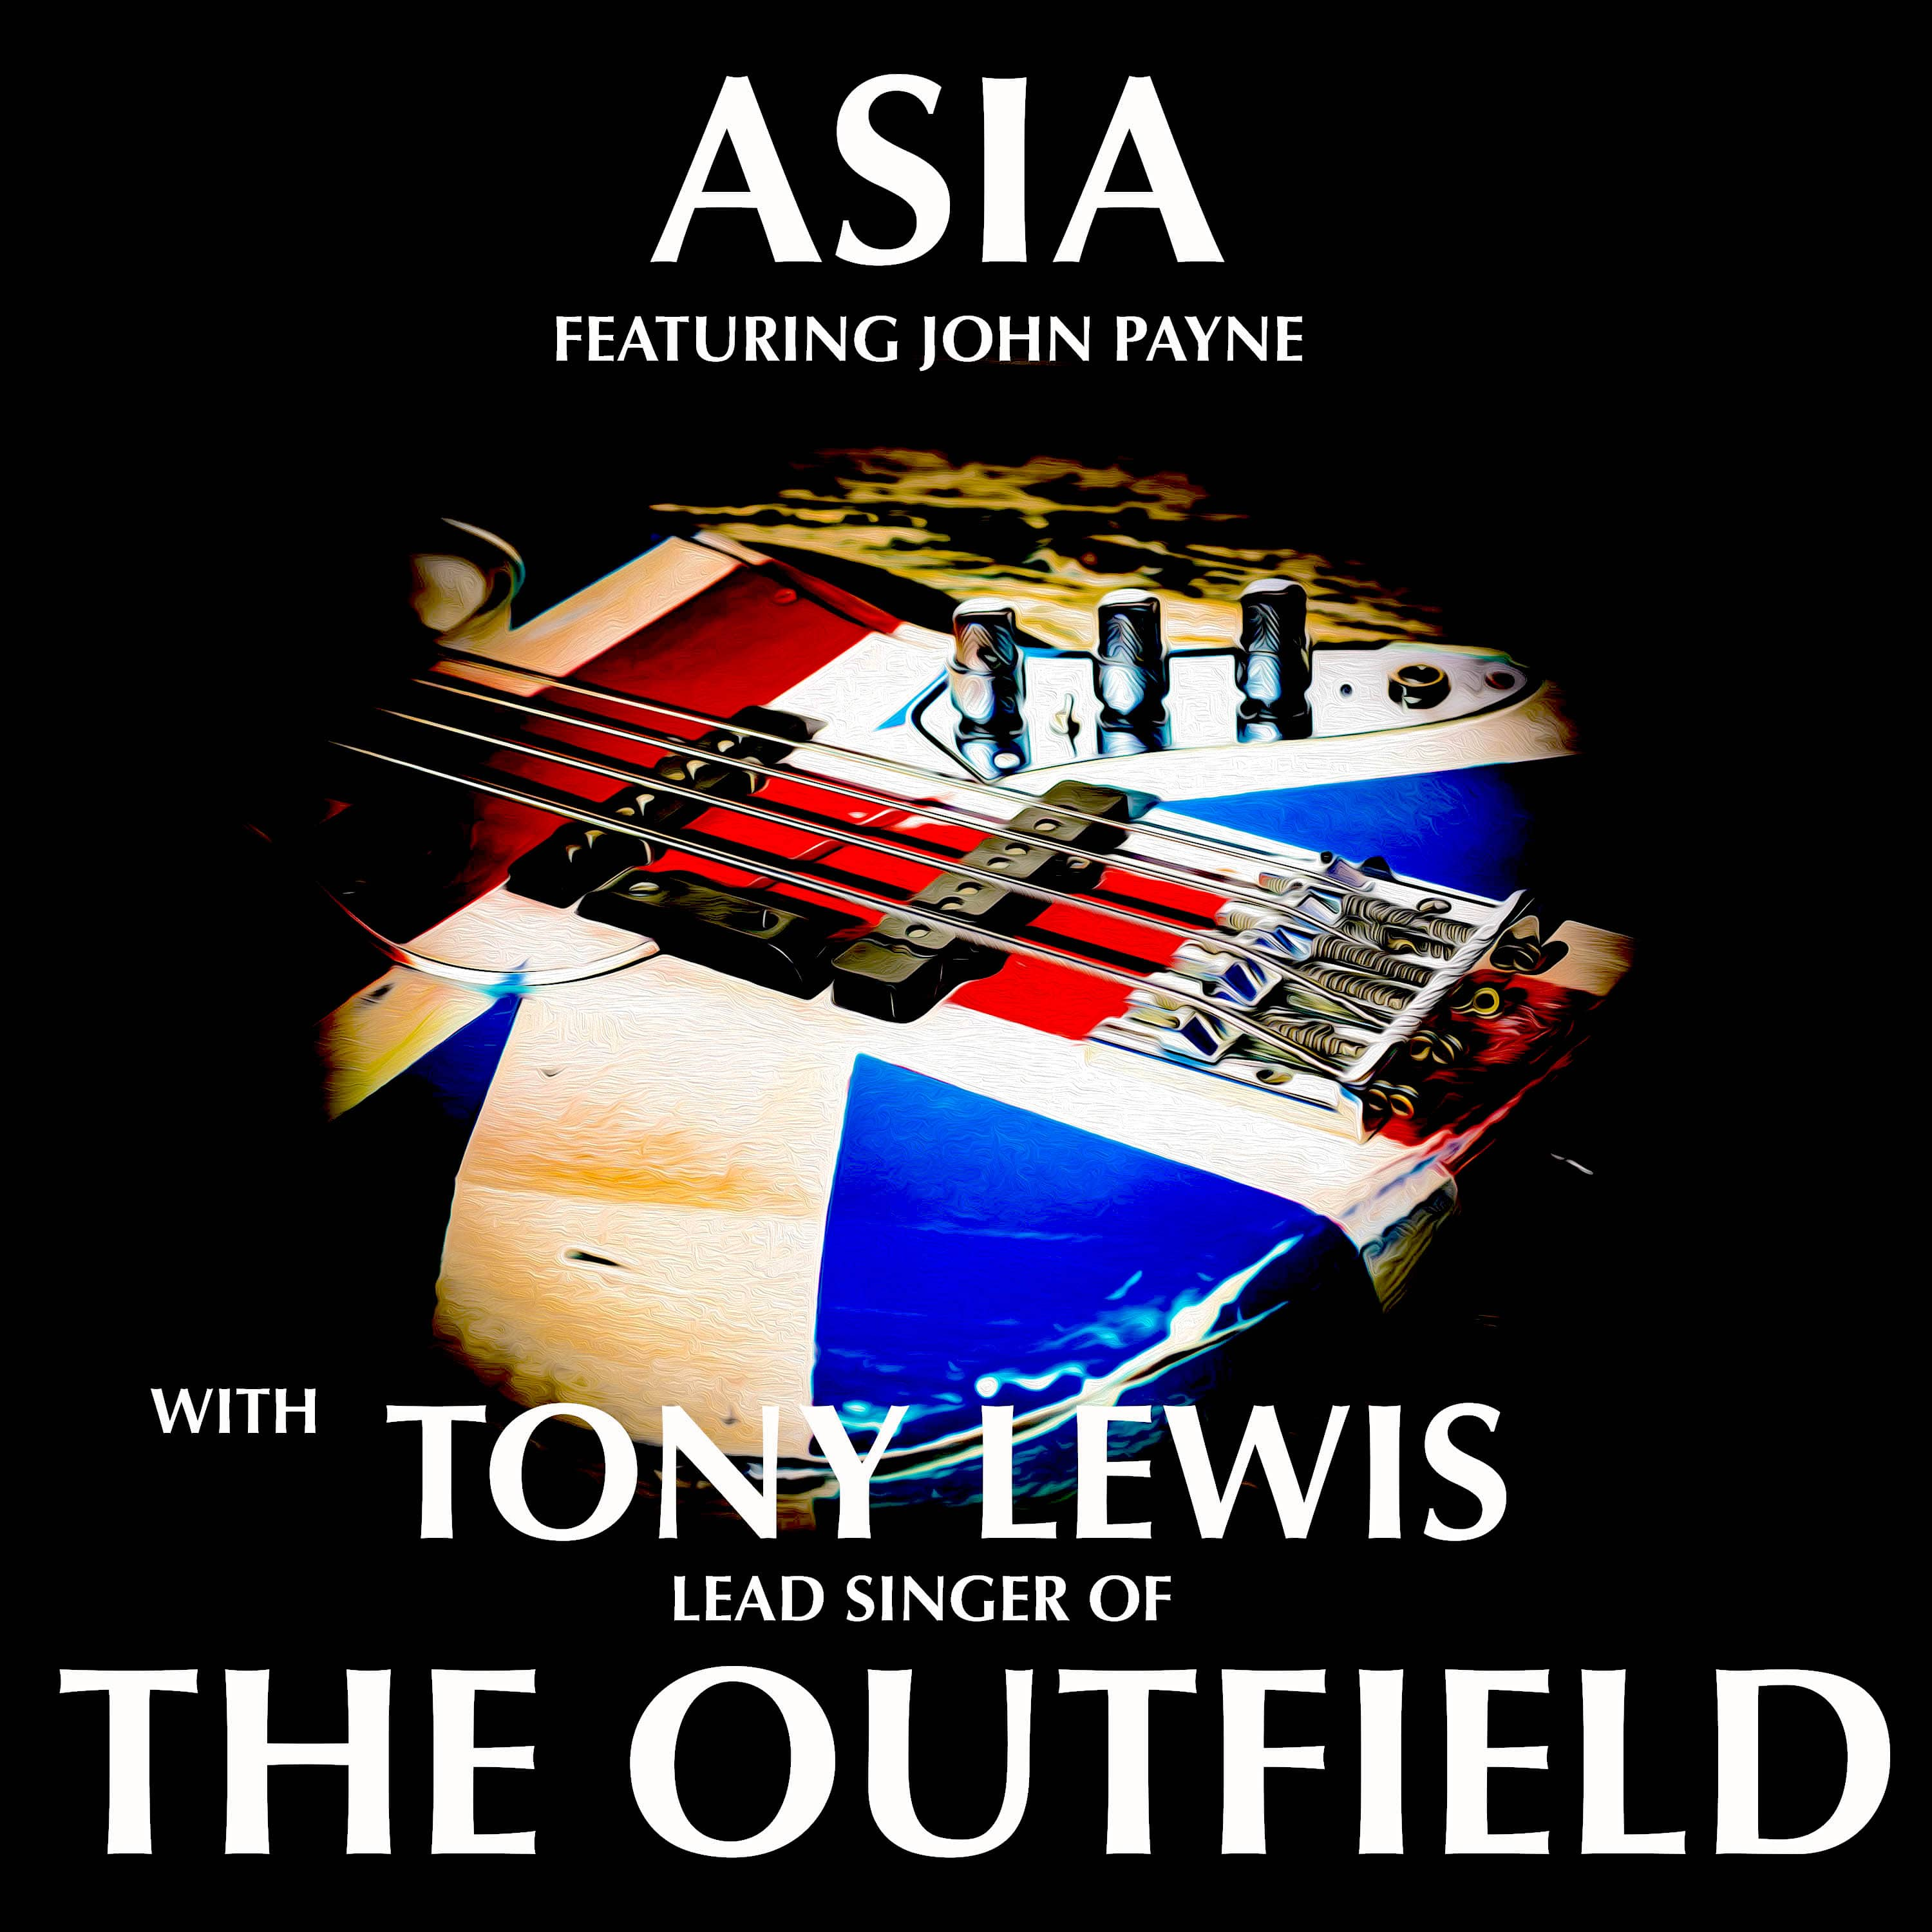 ASIA Featuring John Payne/Tony Lewis From The Outfield